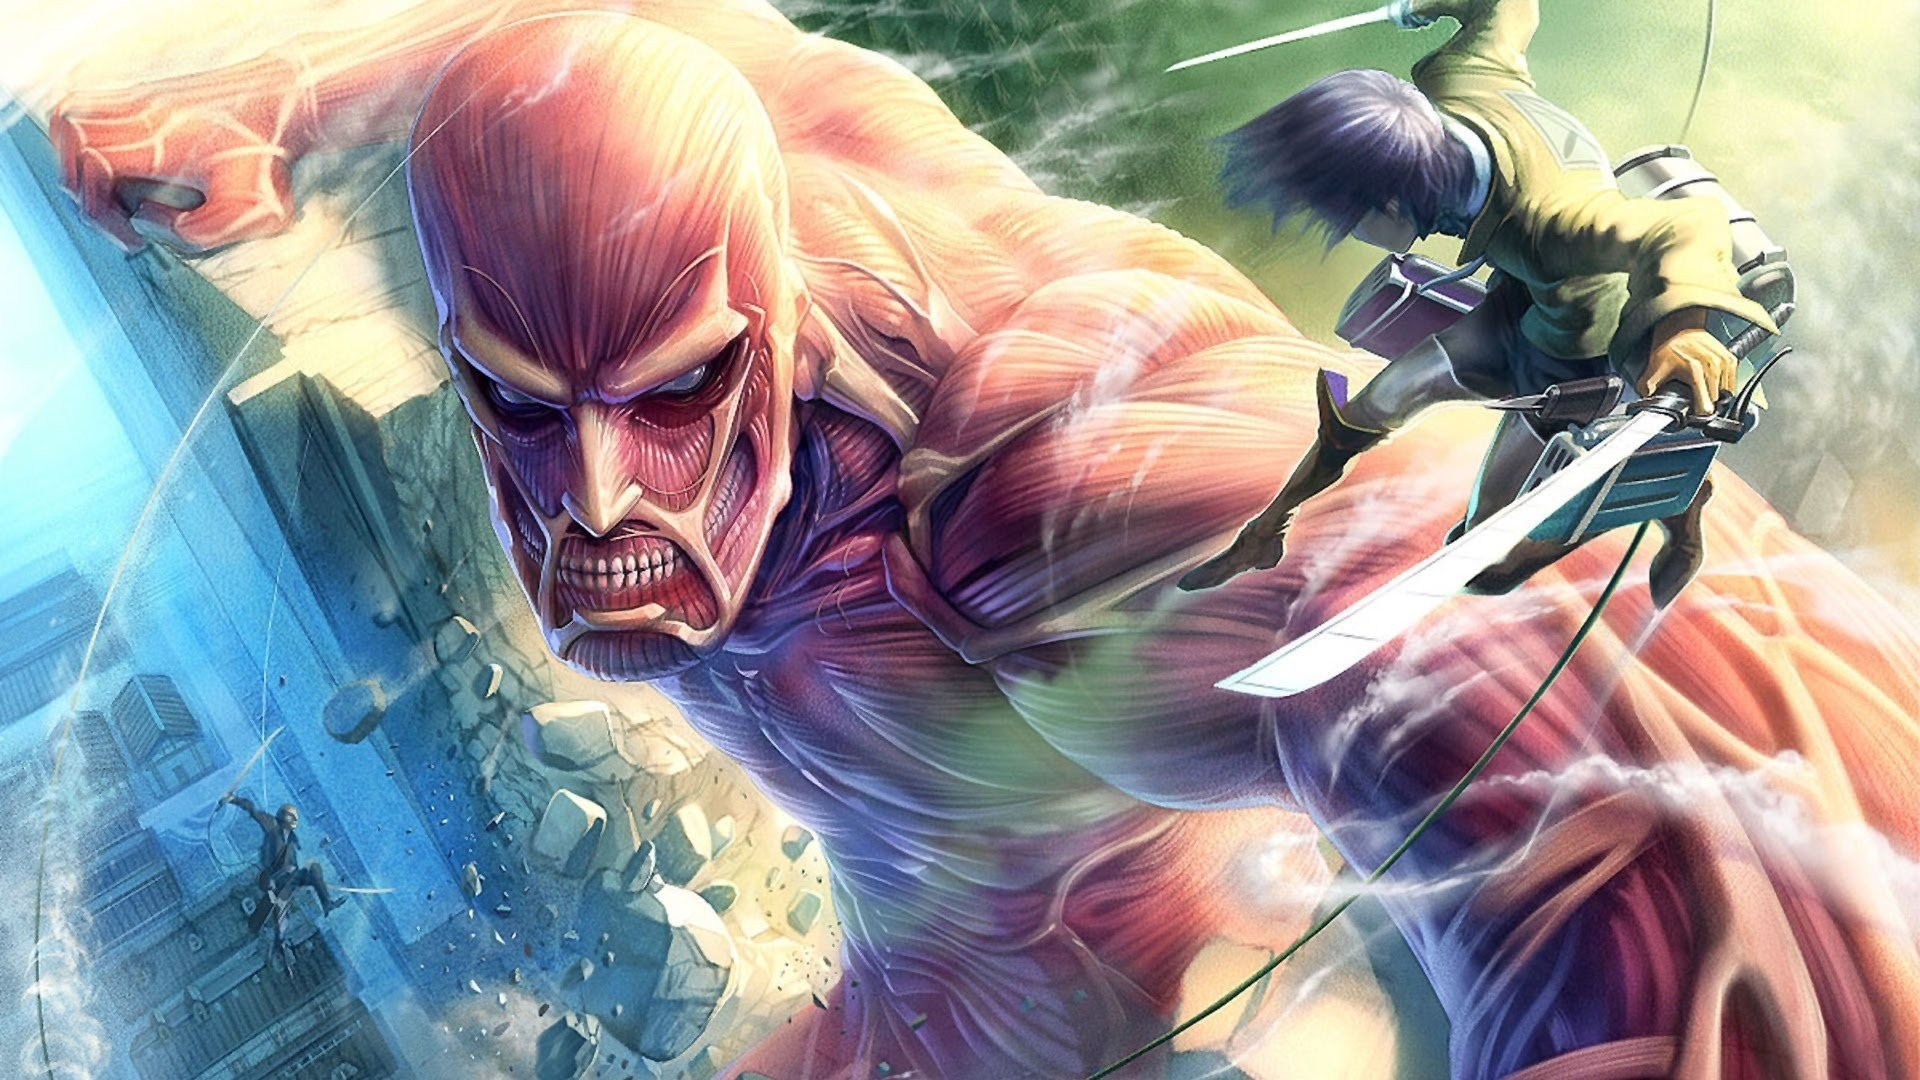 Anime fighting wallpaper 69 images - Epic anime pics ...